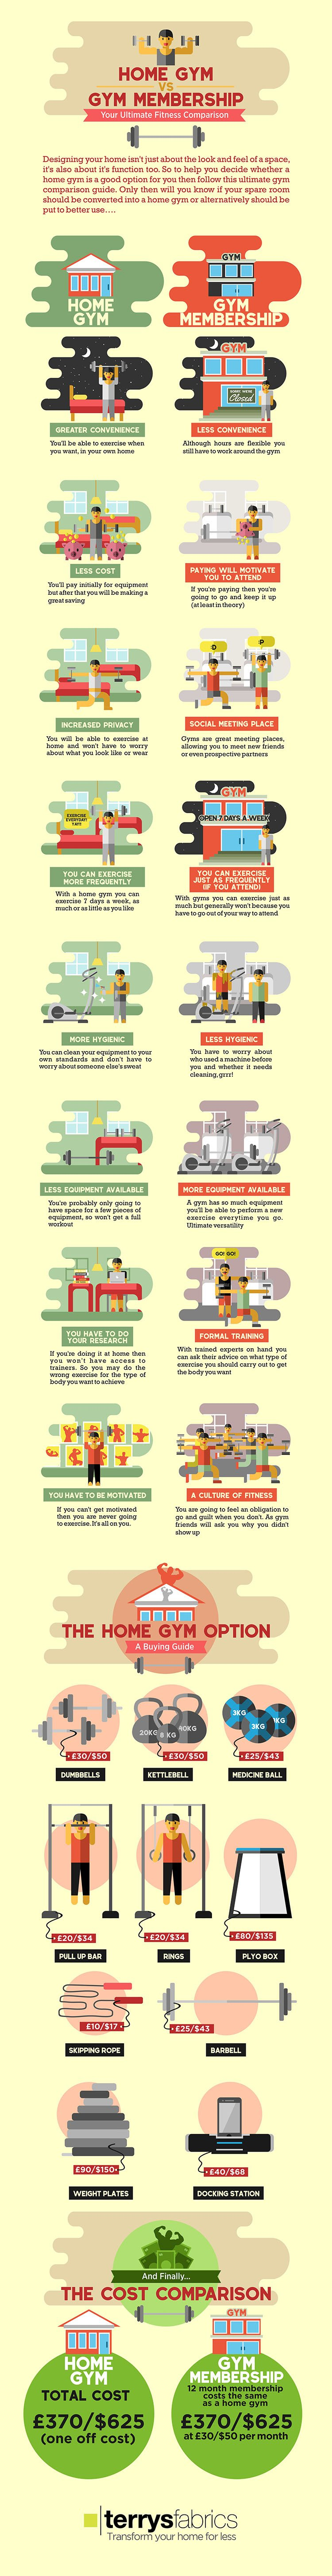 home-gym-vs-gym-membership-infographic